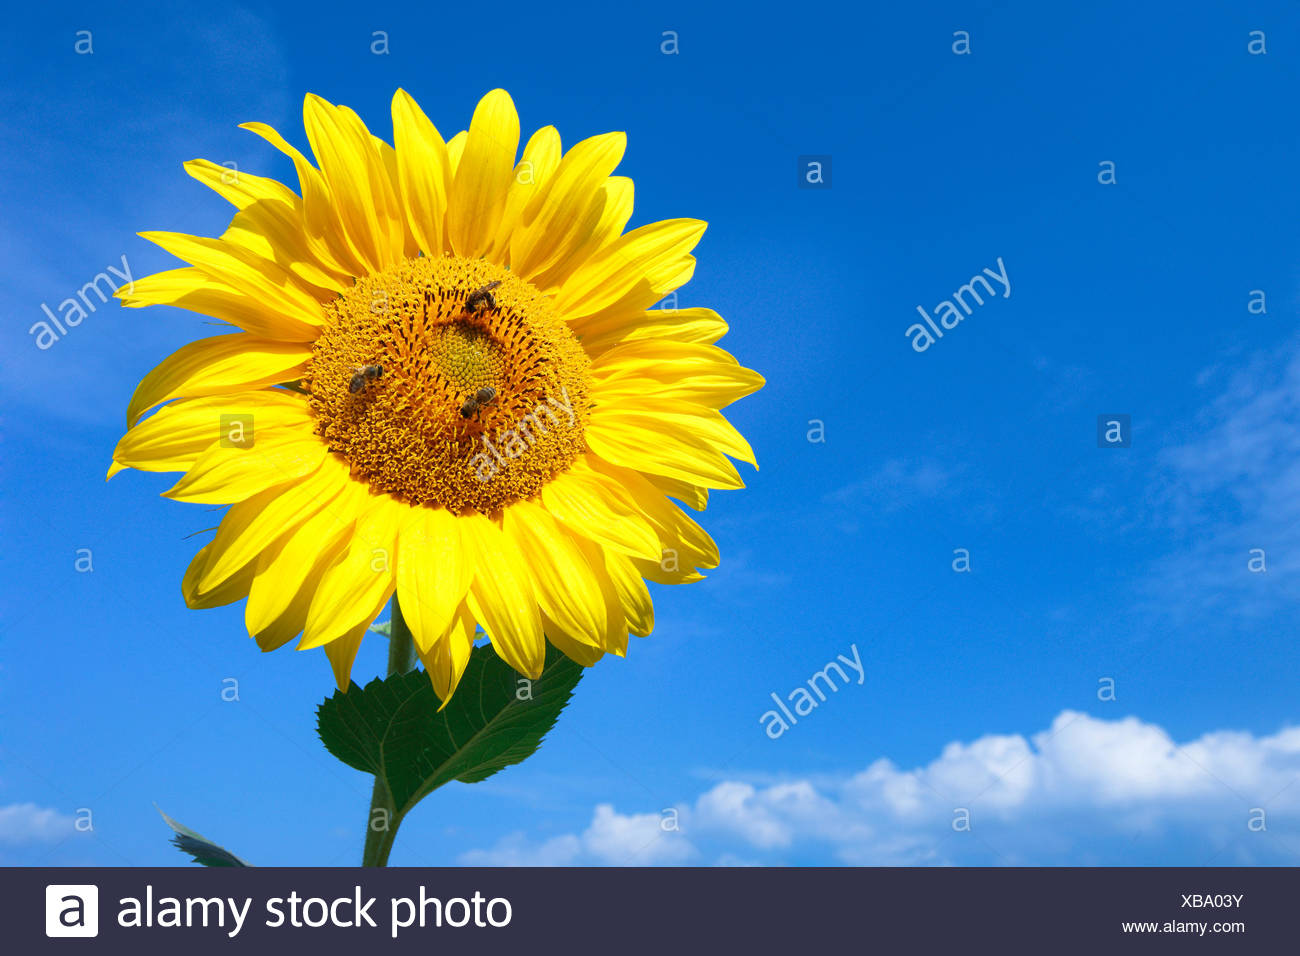 common sunflower (Helianthus annuus), single sunflower in front of blue sky with three honey bees, Switzerland, Zuercher Oberland - Stock Image